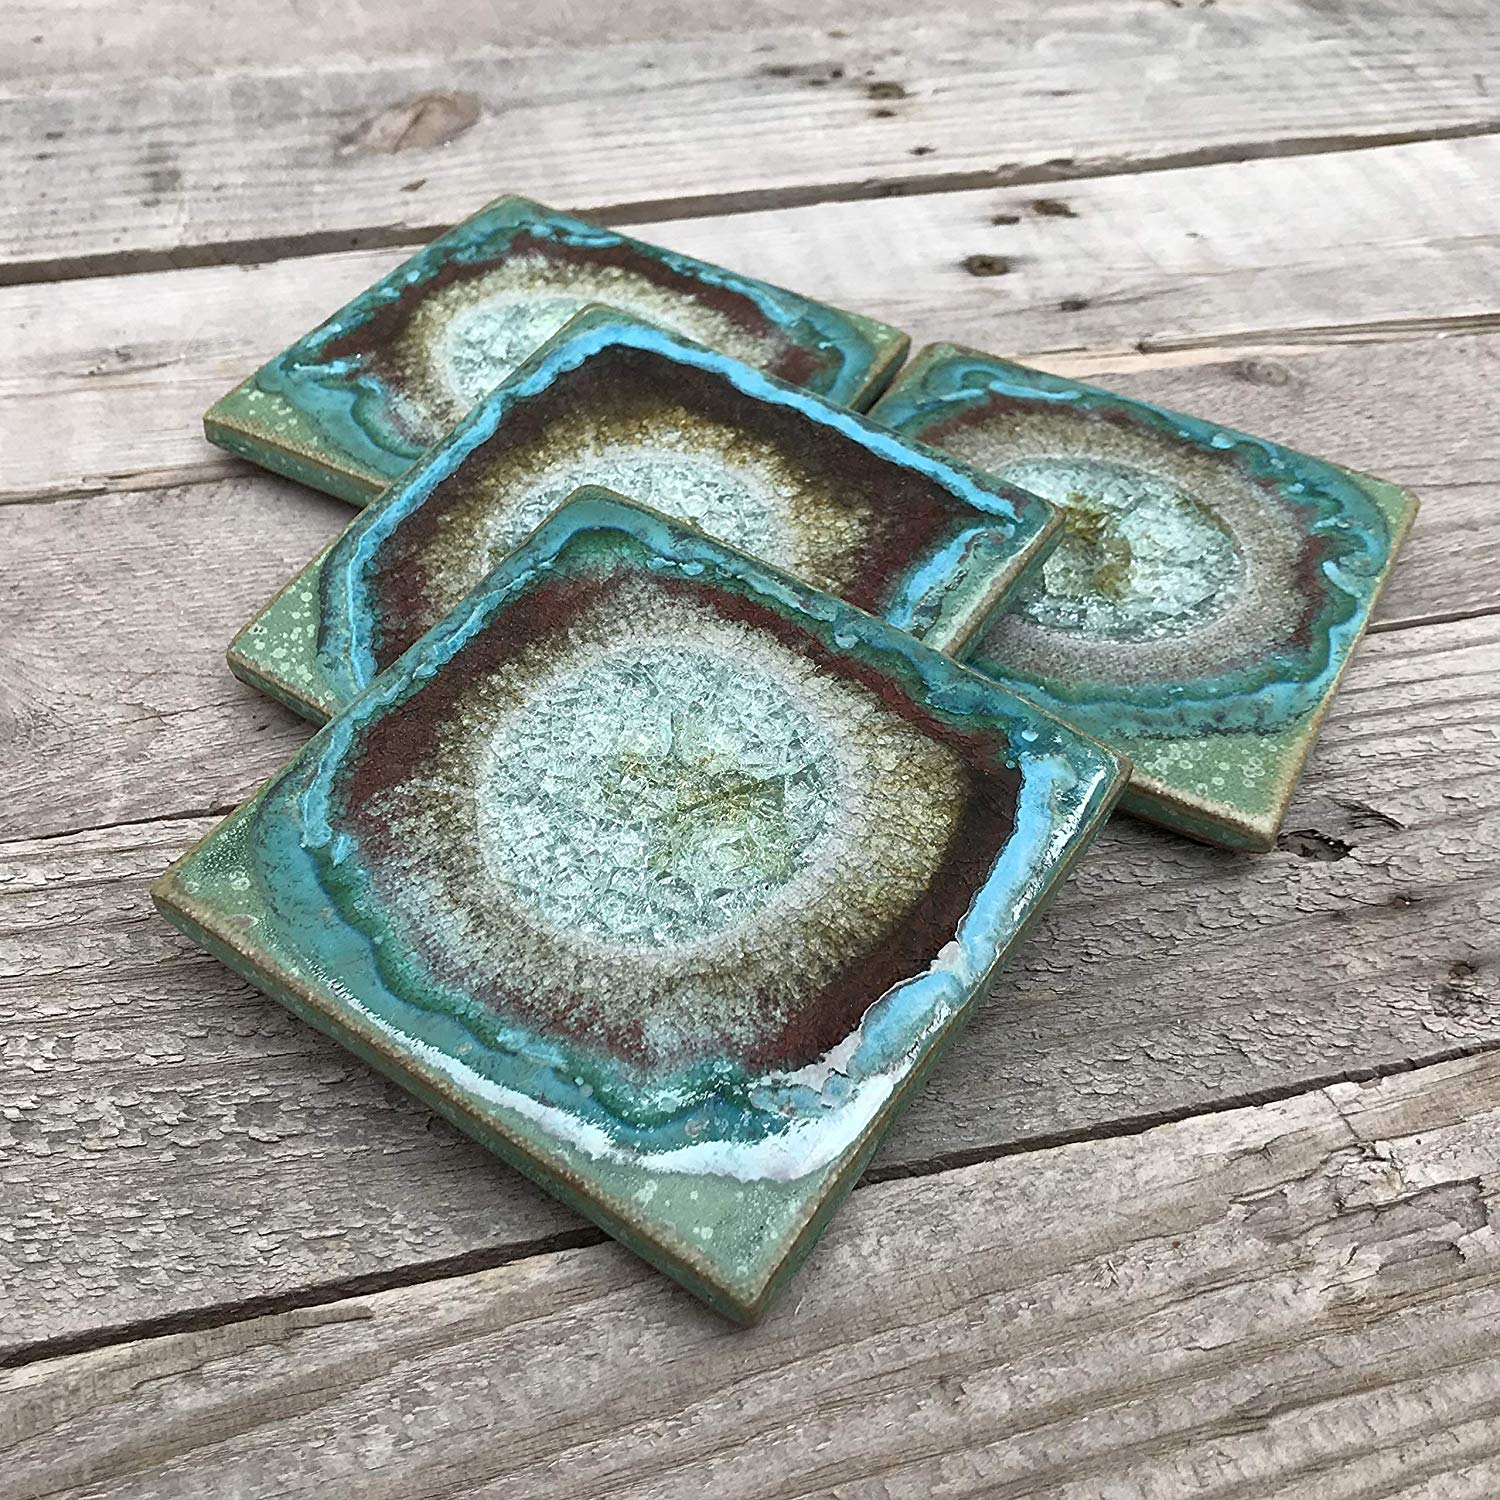 Geode Crackle Coaster Set of 4 in GREEN: Geode Coaster, Crackle Coaster, Fused Glass Coaster, Crackle Glass Coaster, Agate Coaster, Ceramic Coaster, Dock 6 Pottery Coaster